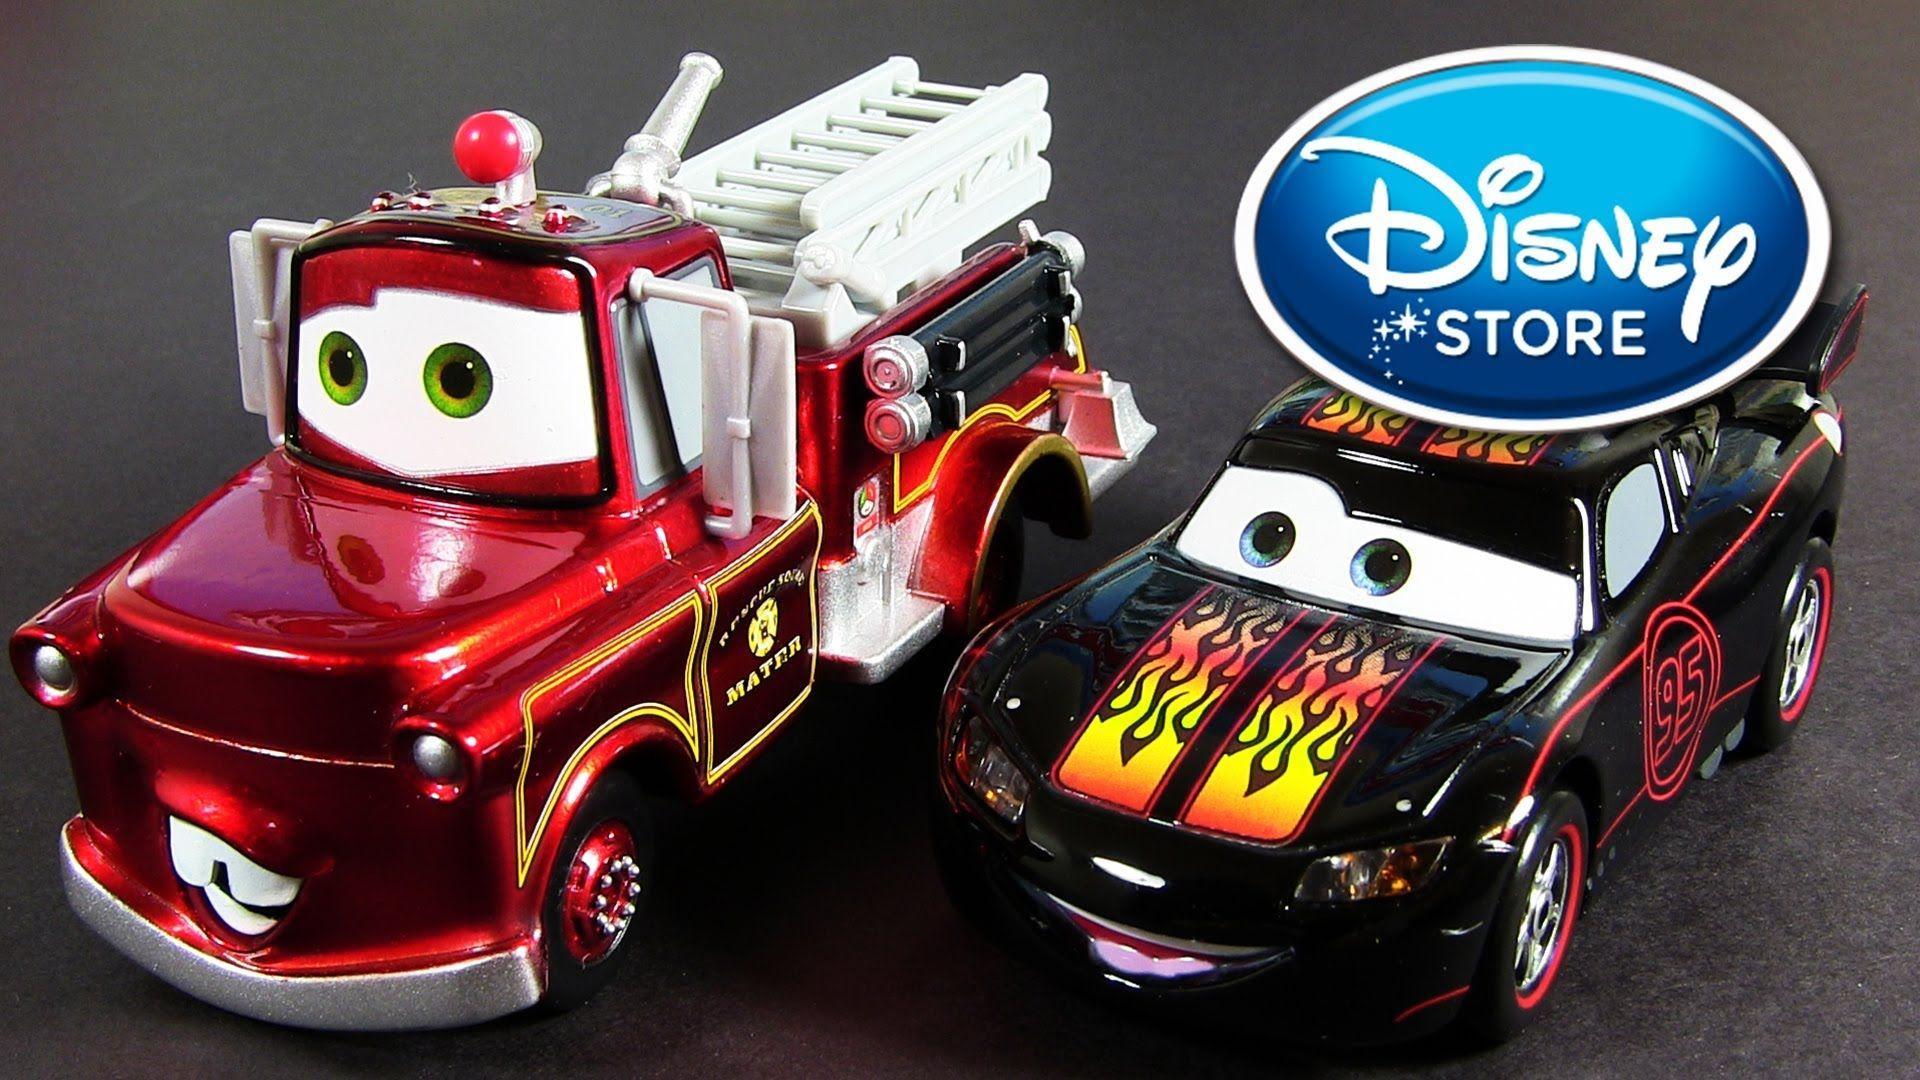 Hot Rod Lightning McQueen and Rescue Mater Disney-Store